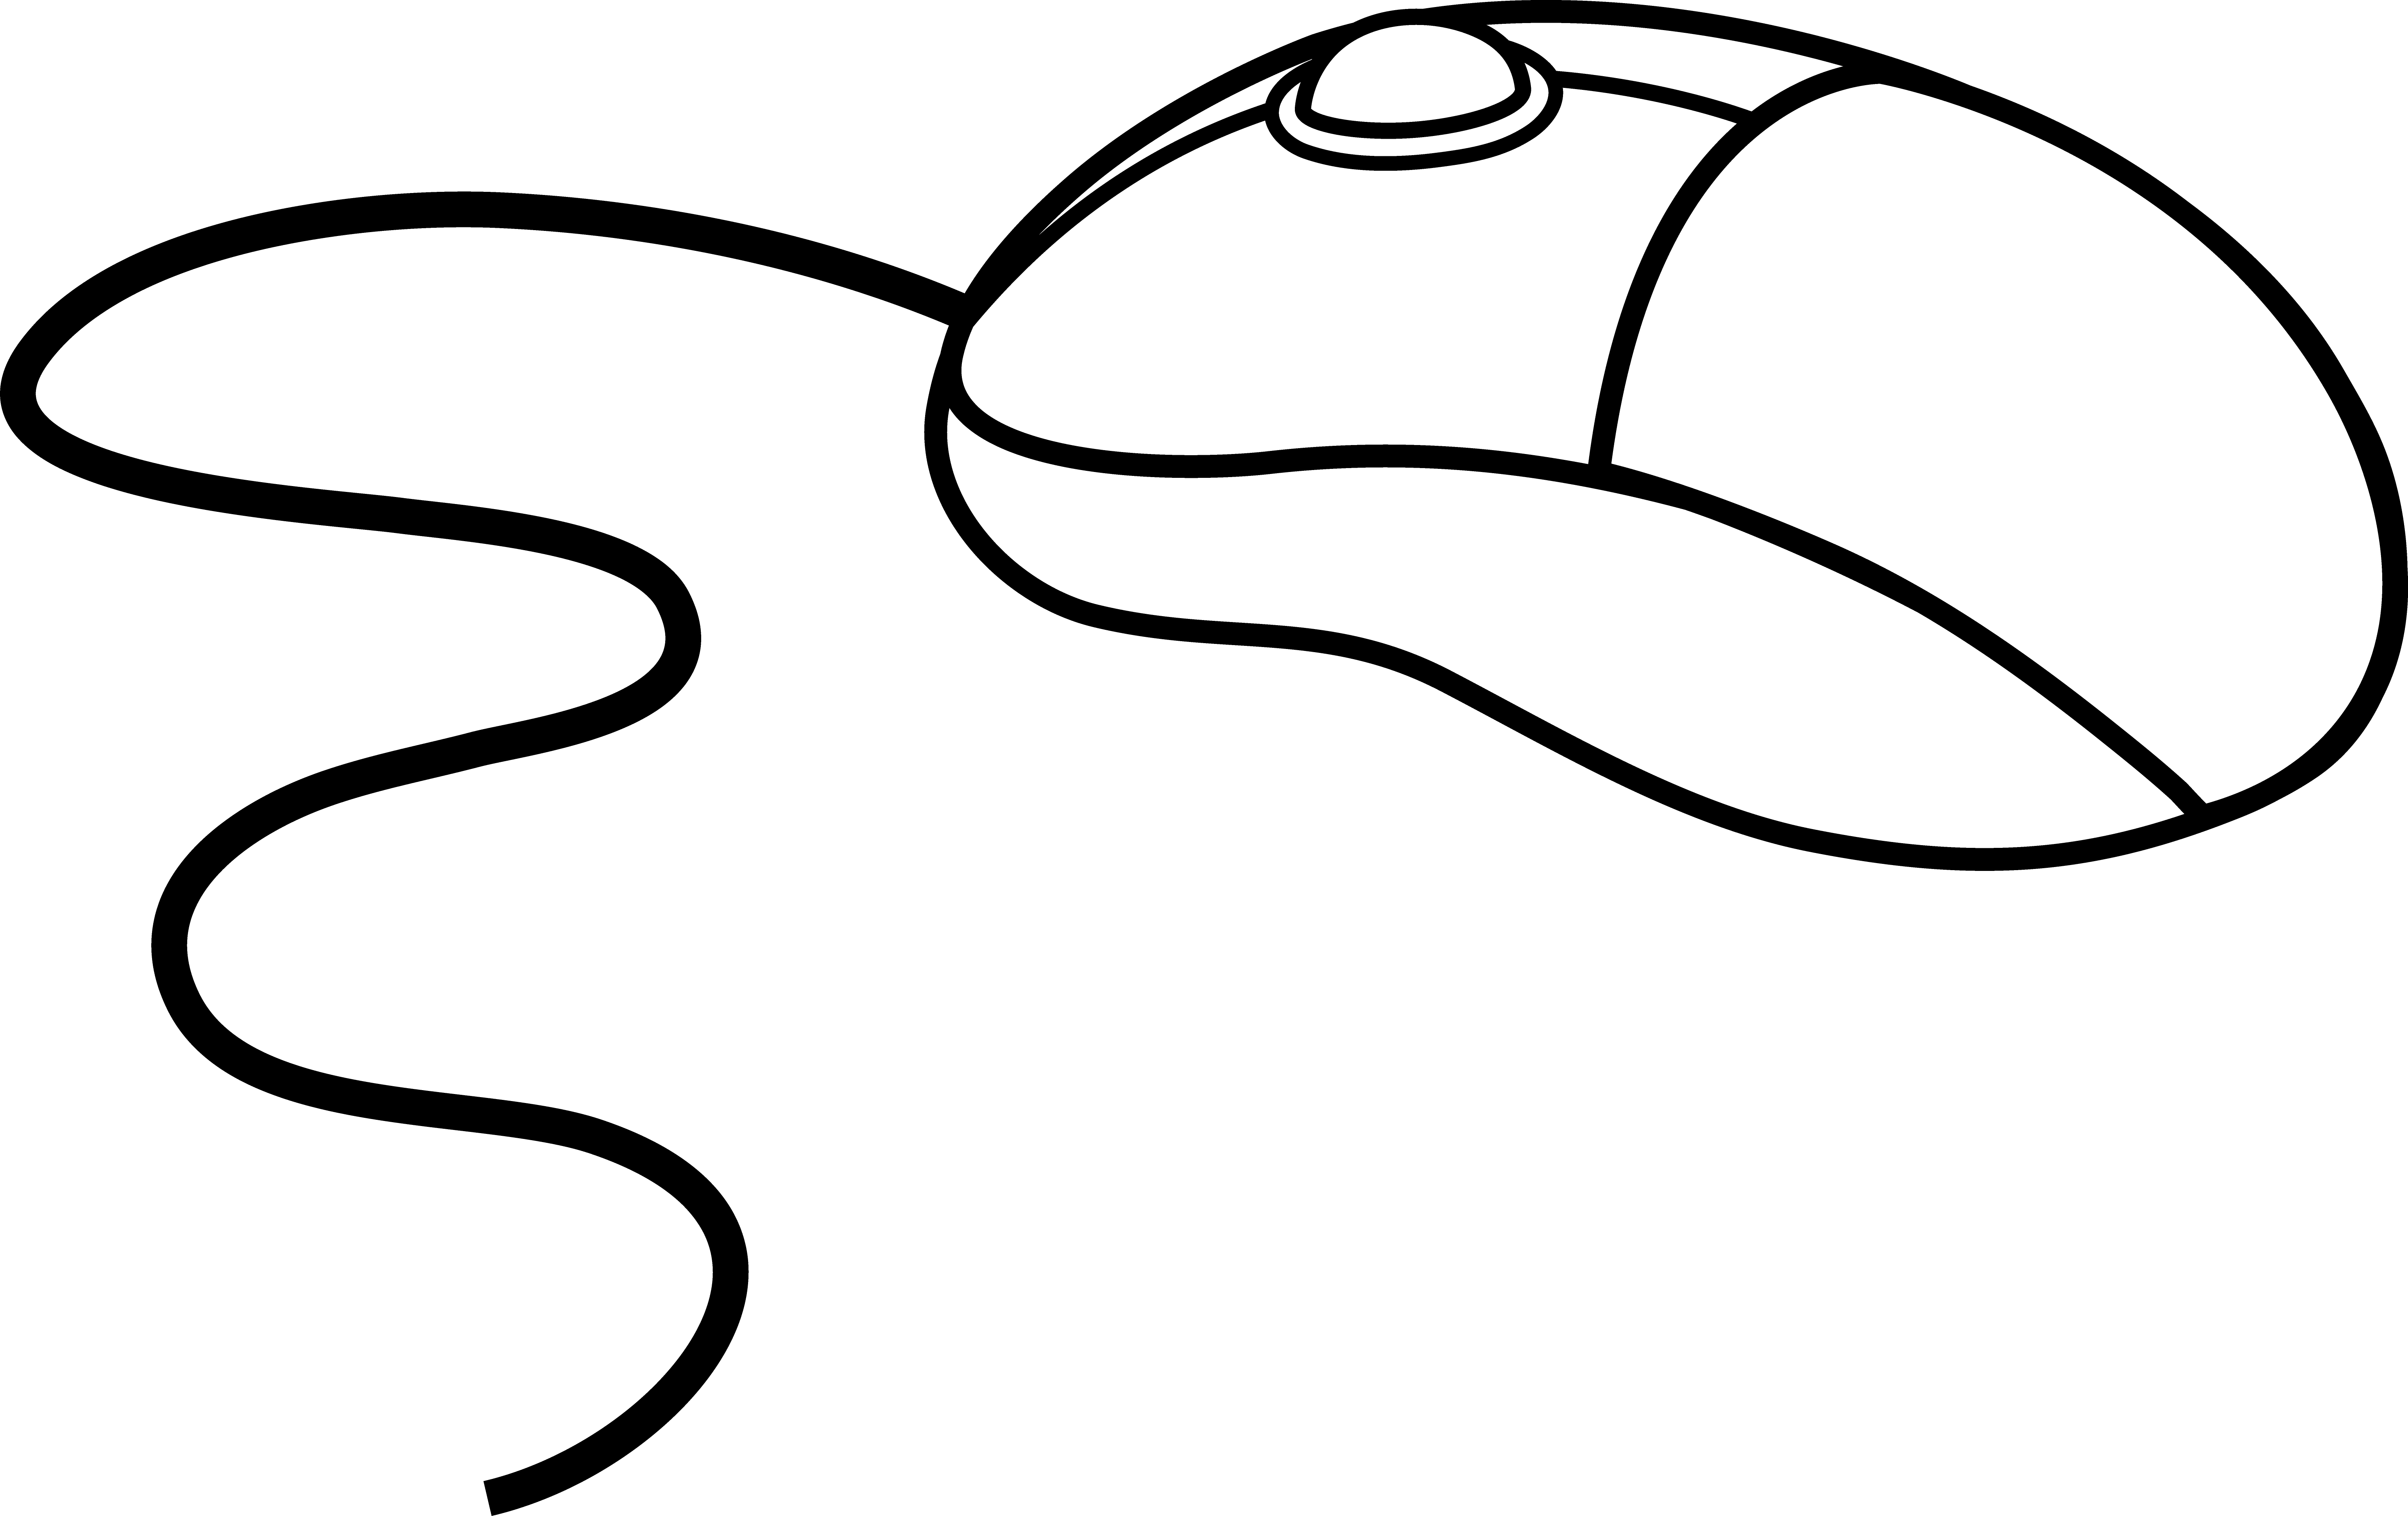 6161x3880 Computer mouse clipart black and white free 2